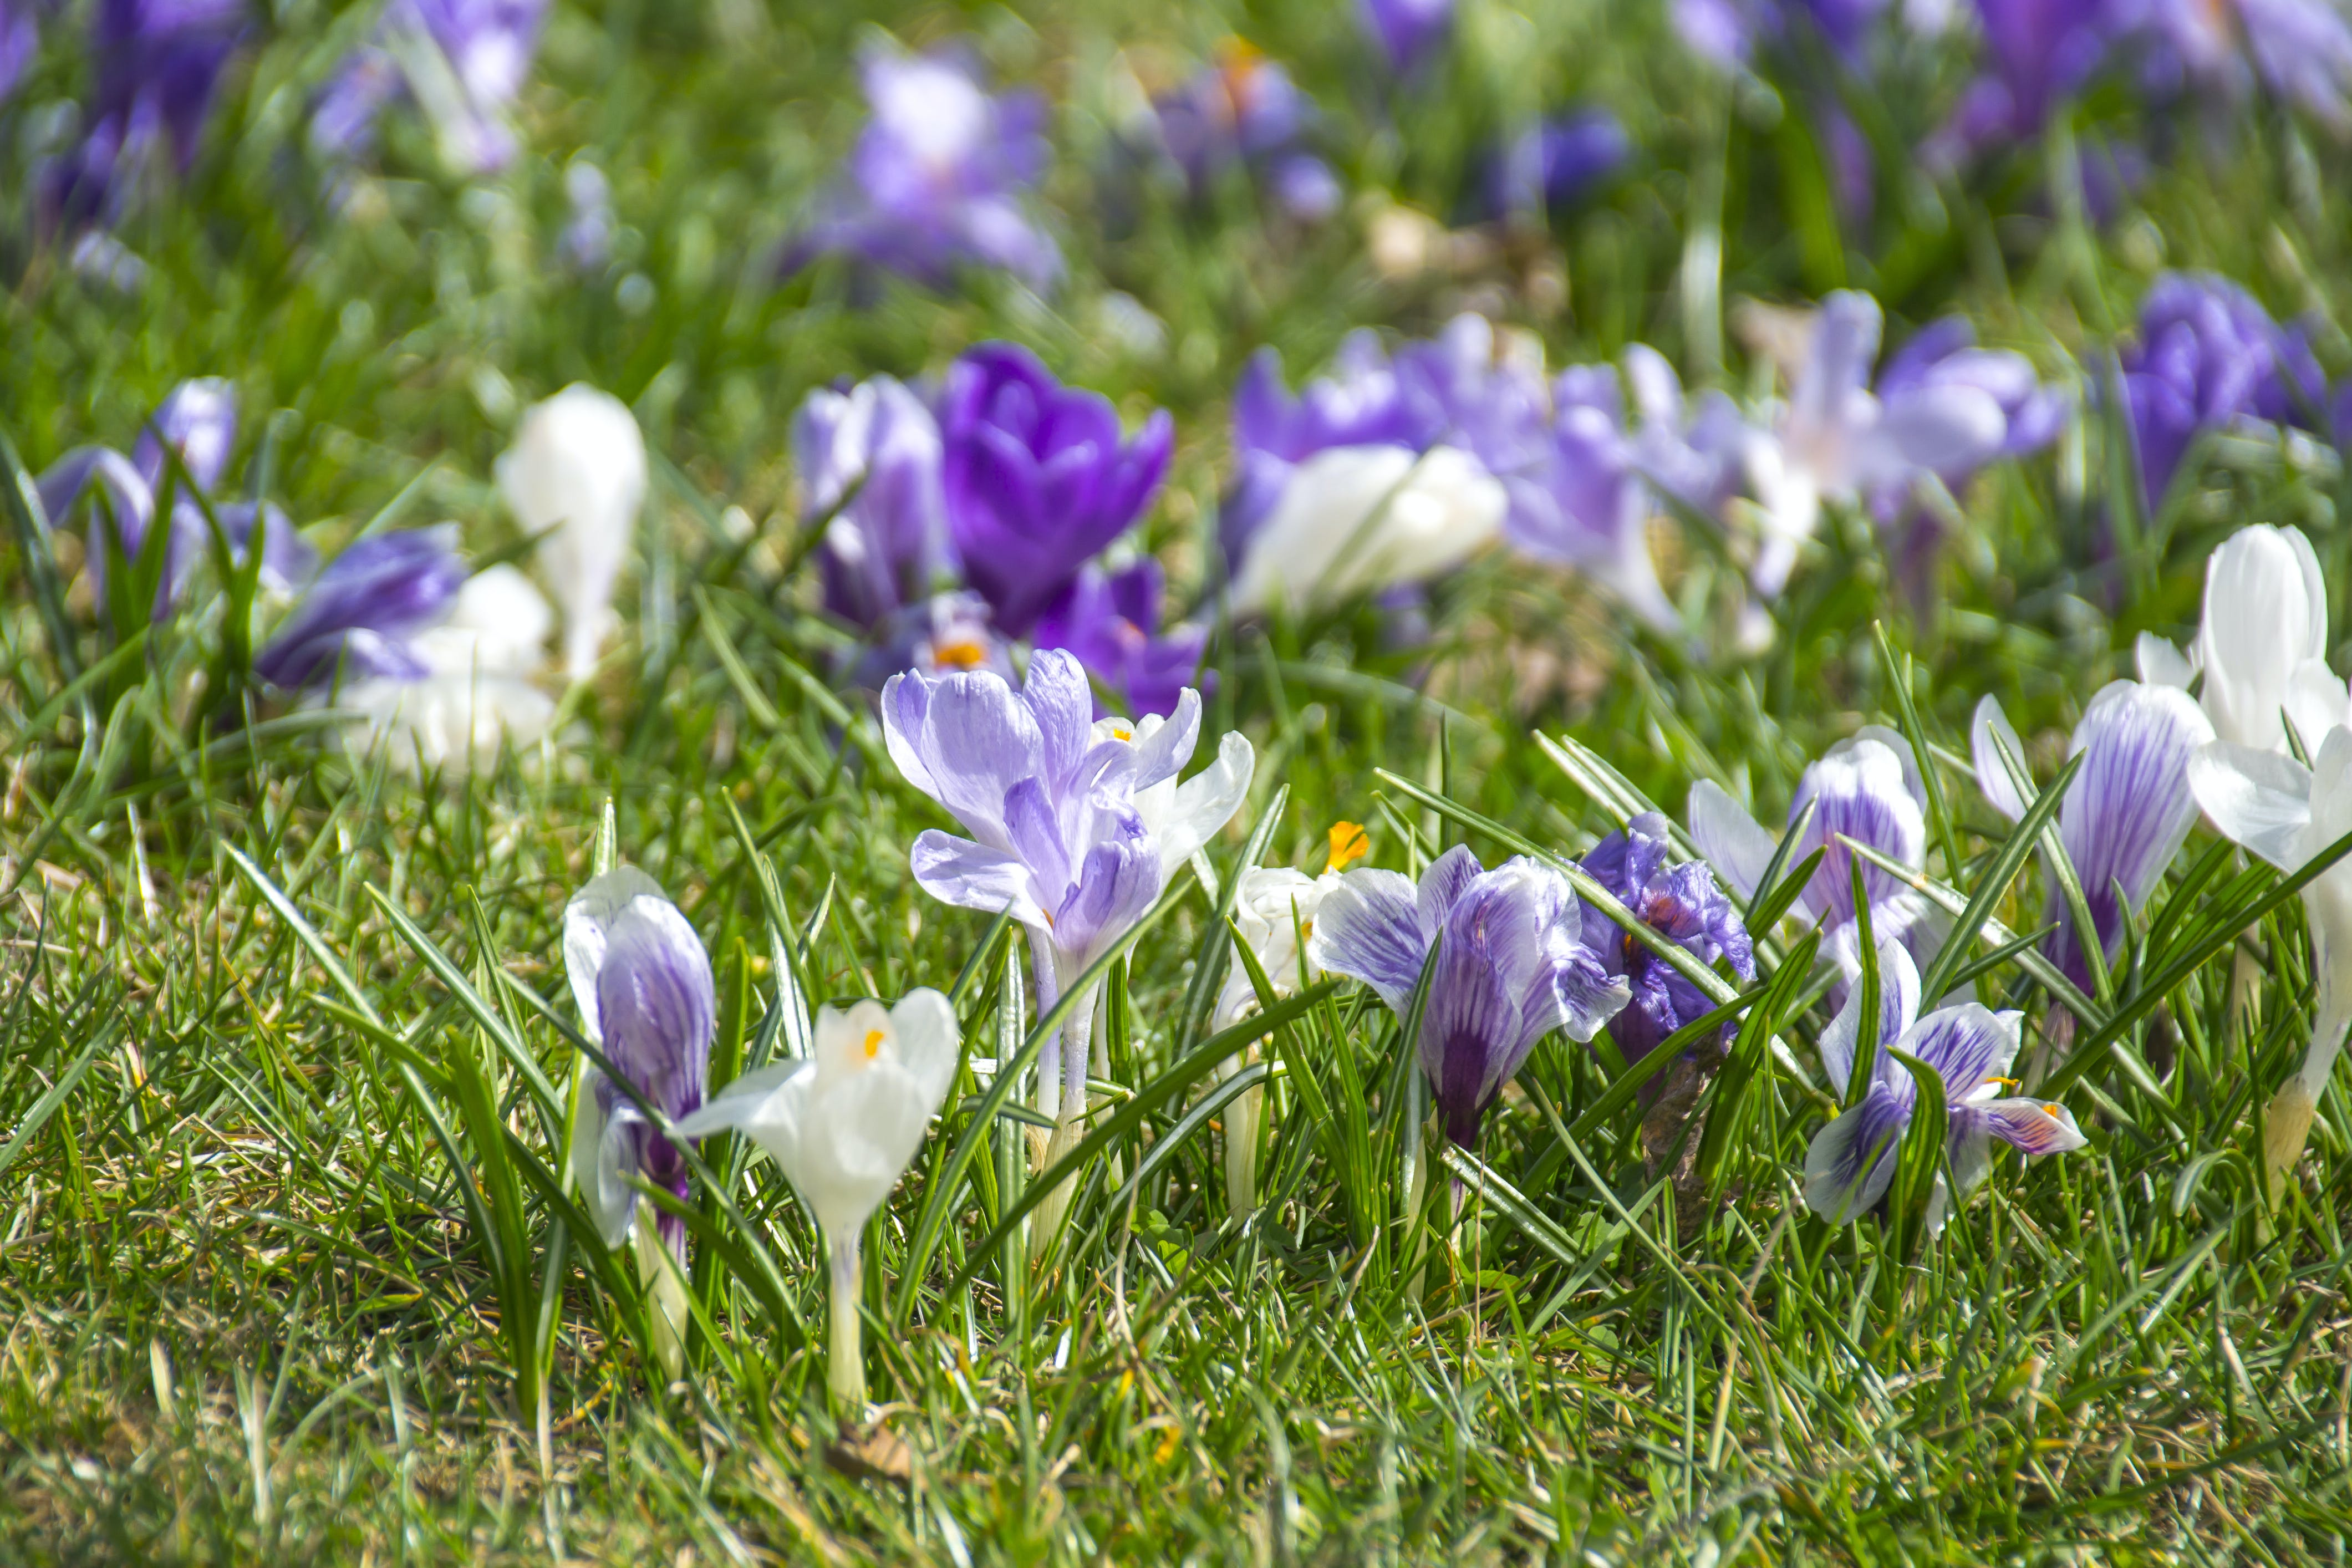 Free stock photo of flowers, grass, spring, colorful